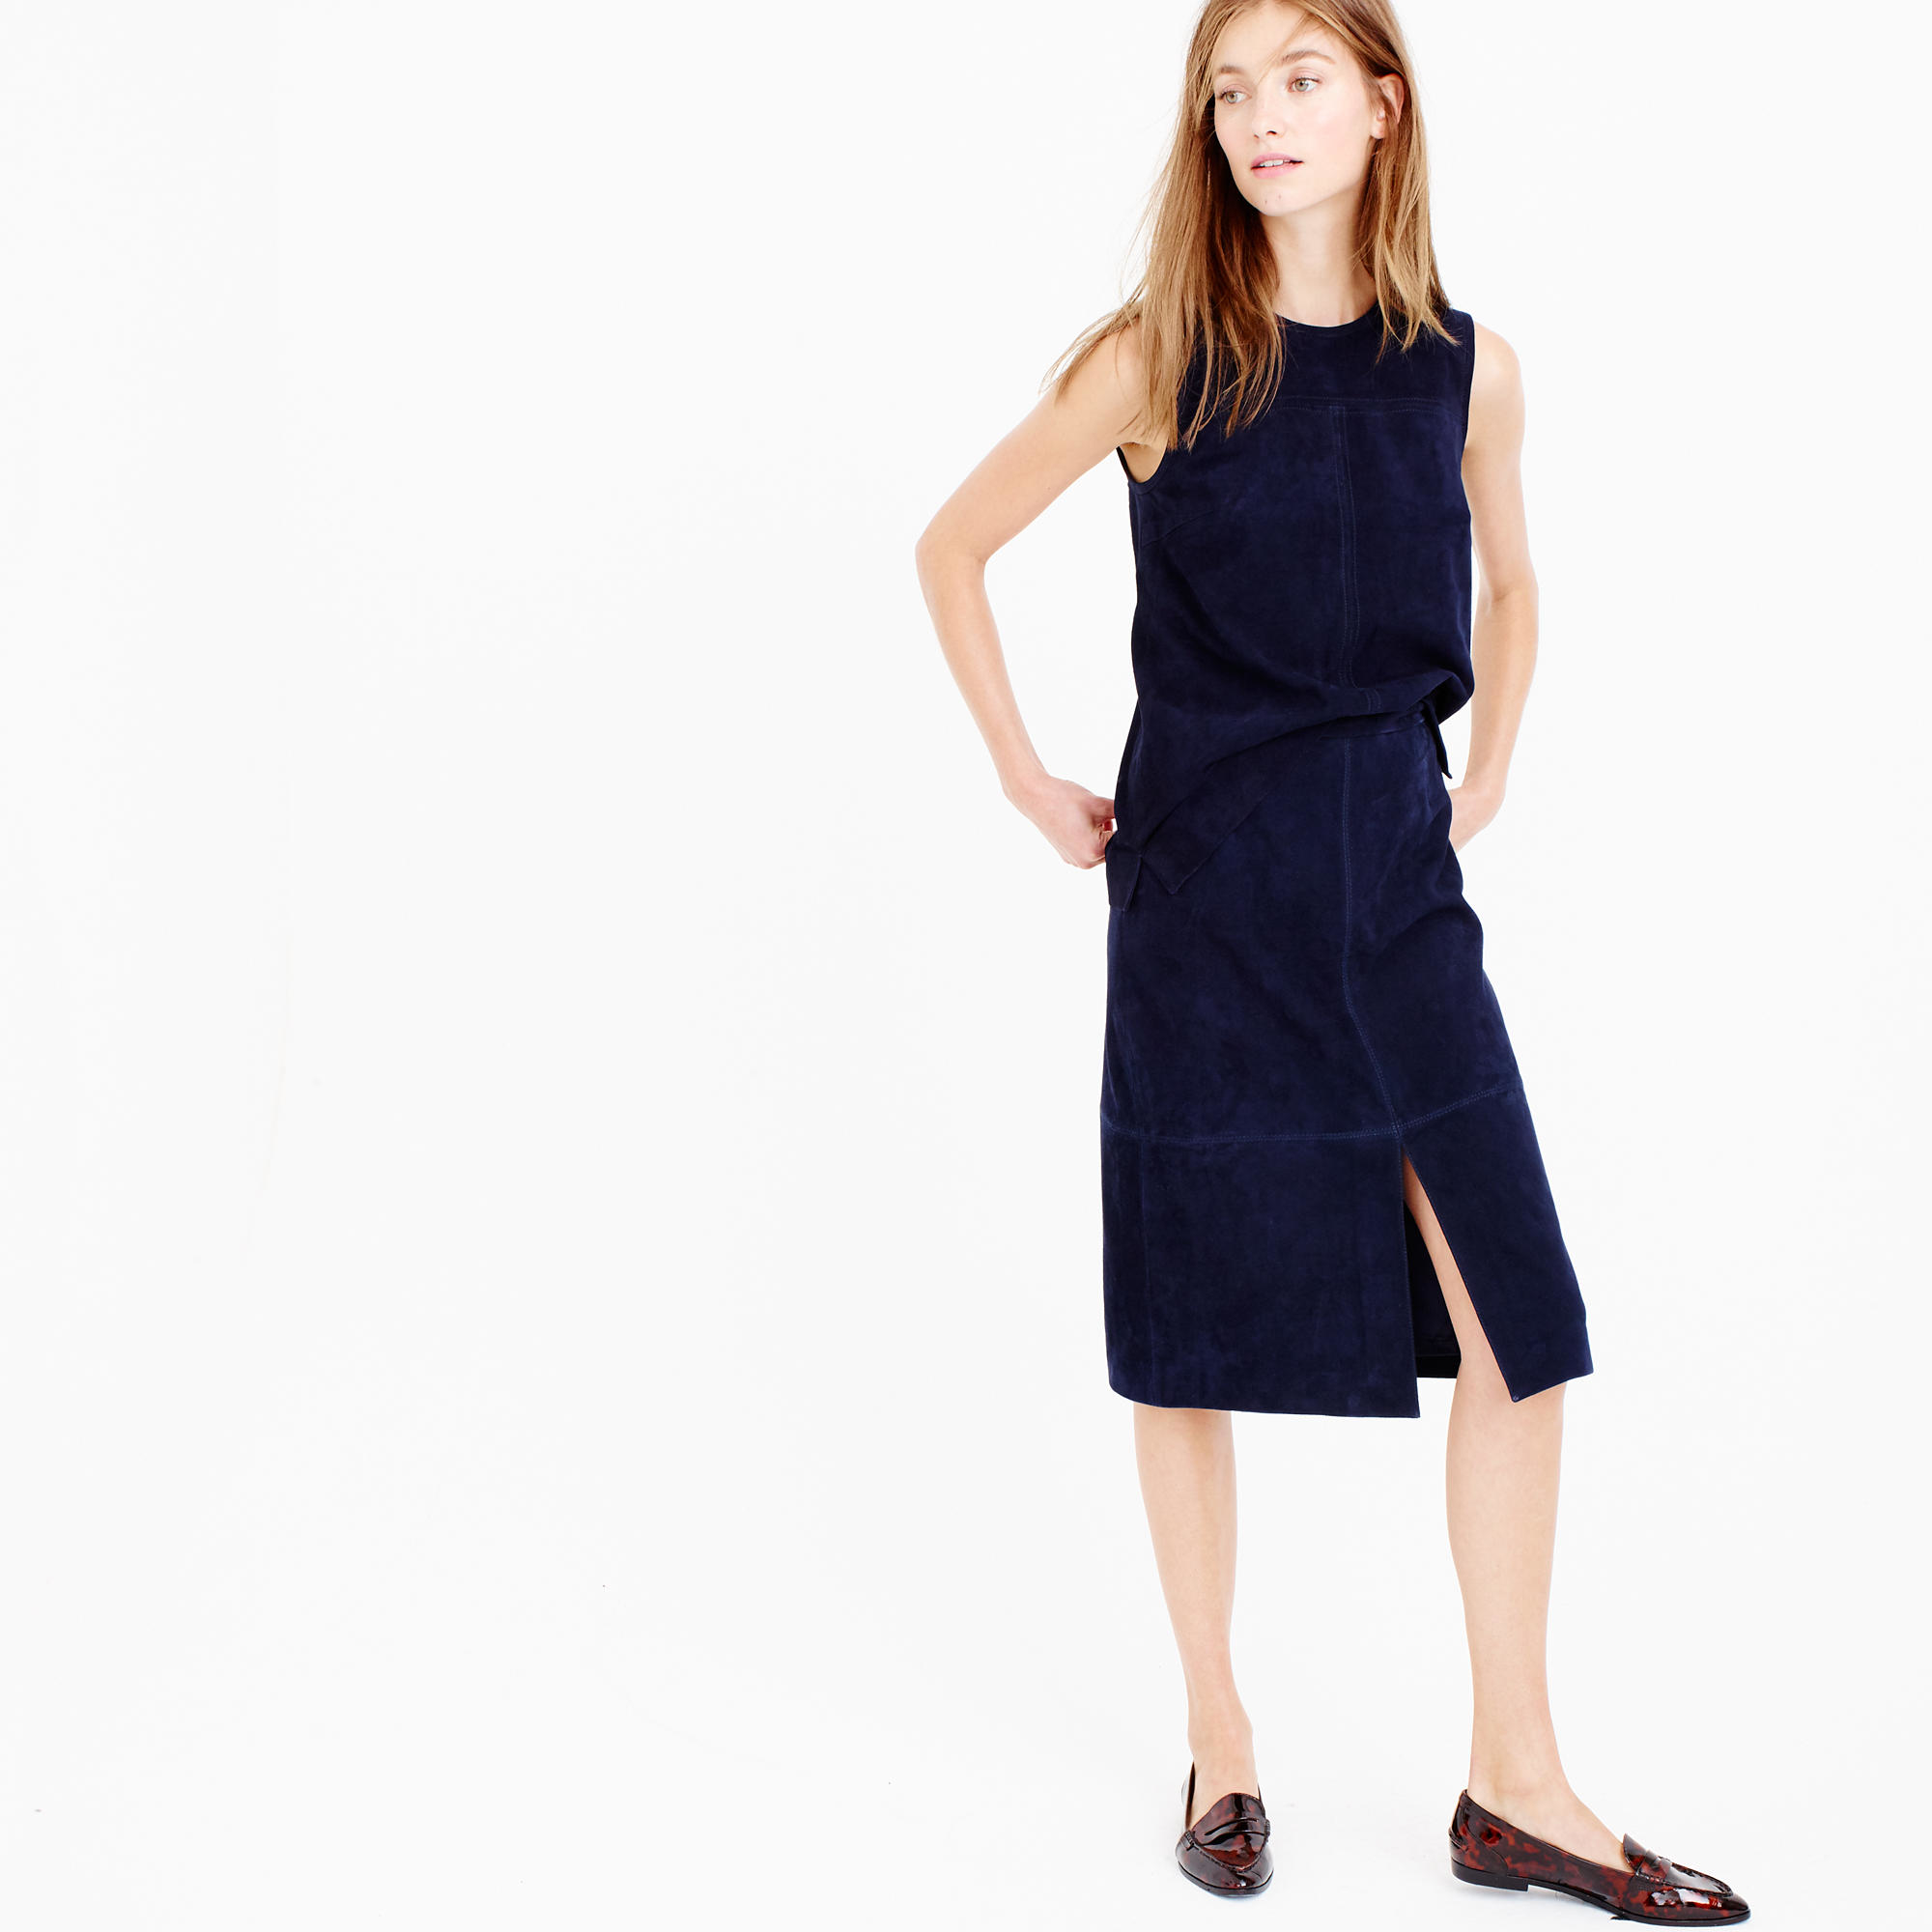 J.crew Collection A-line Midi Skirt In Suede in Blue | Lyst